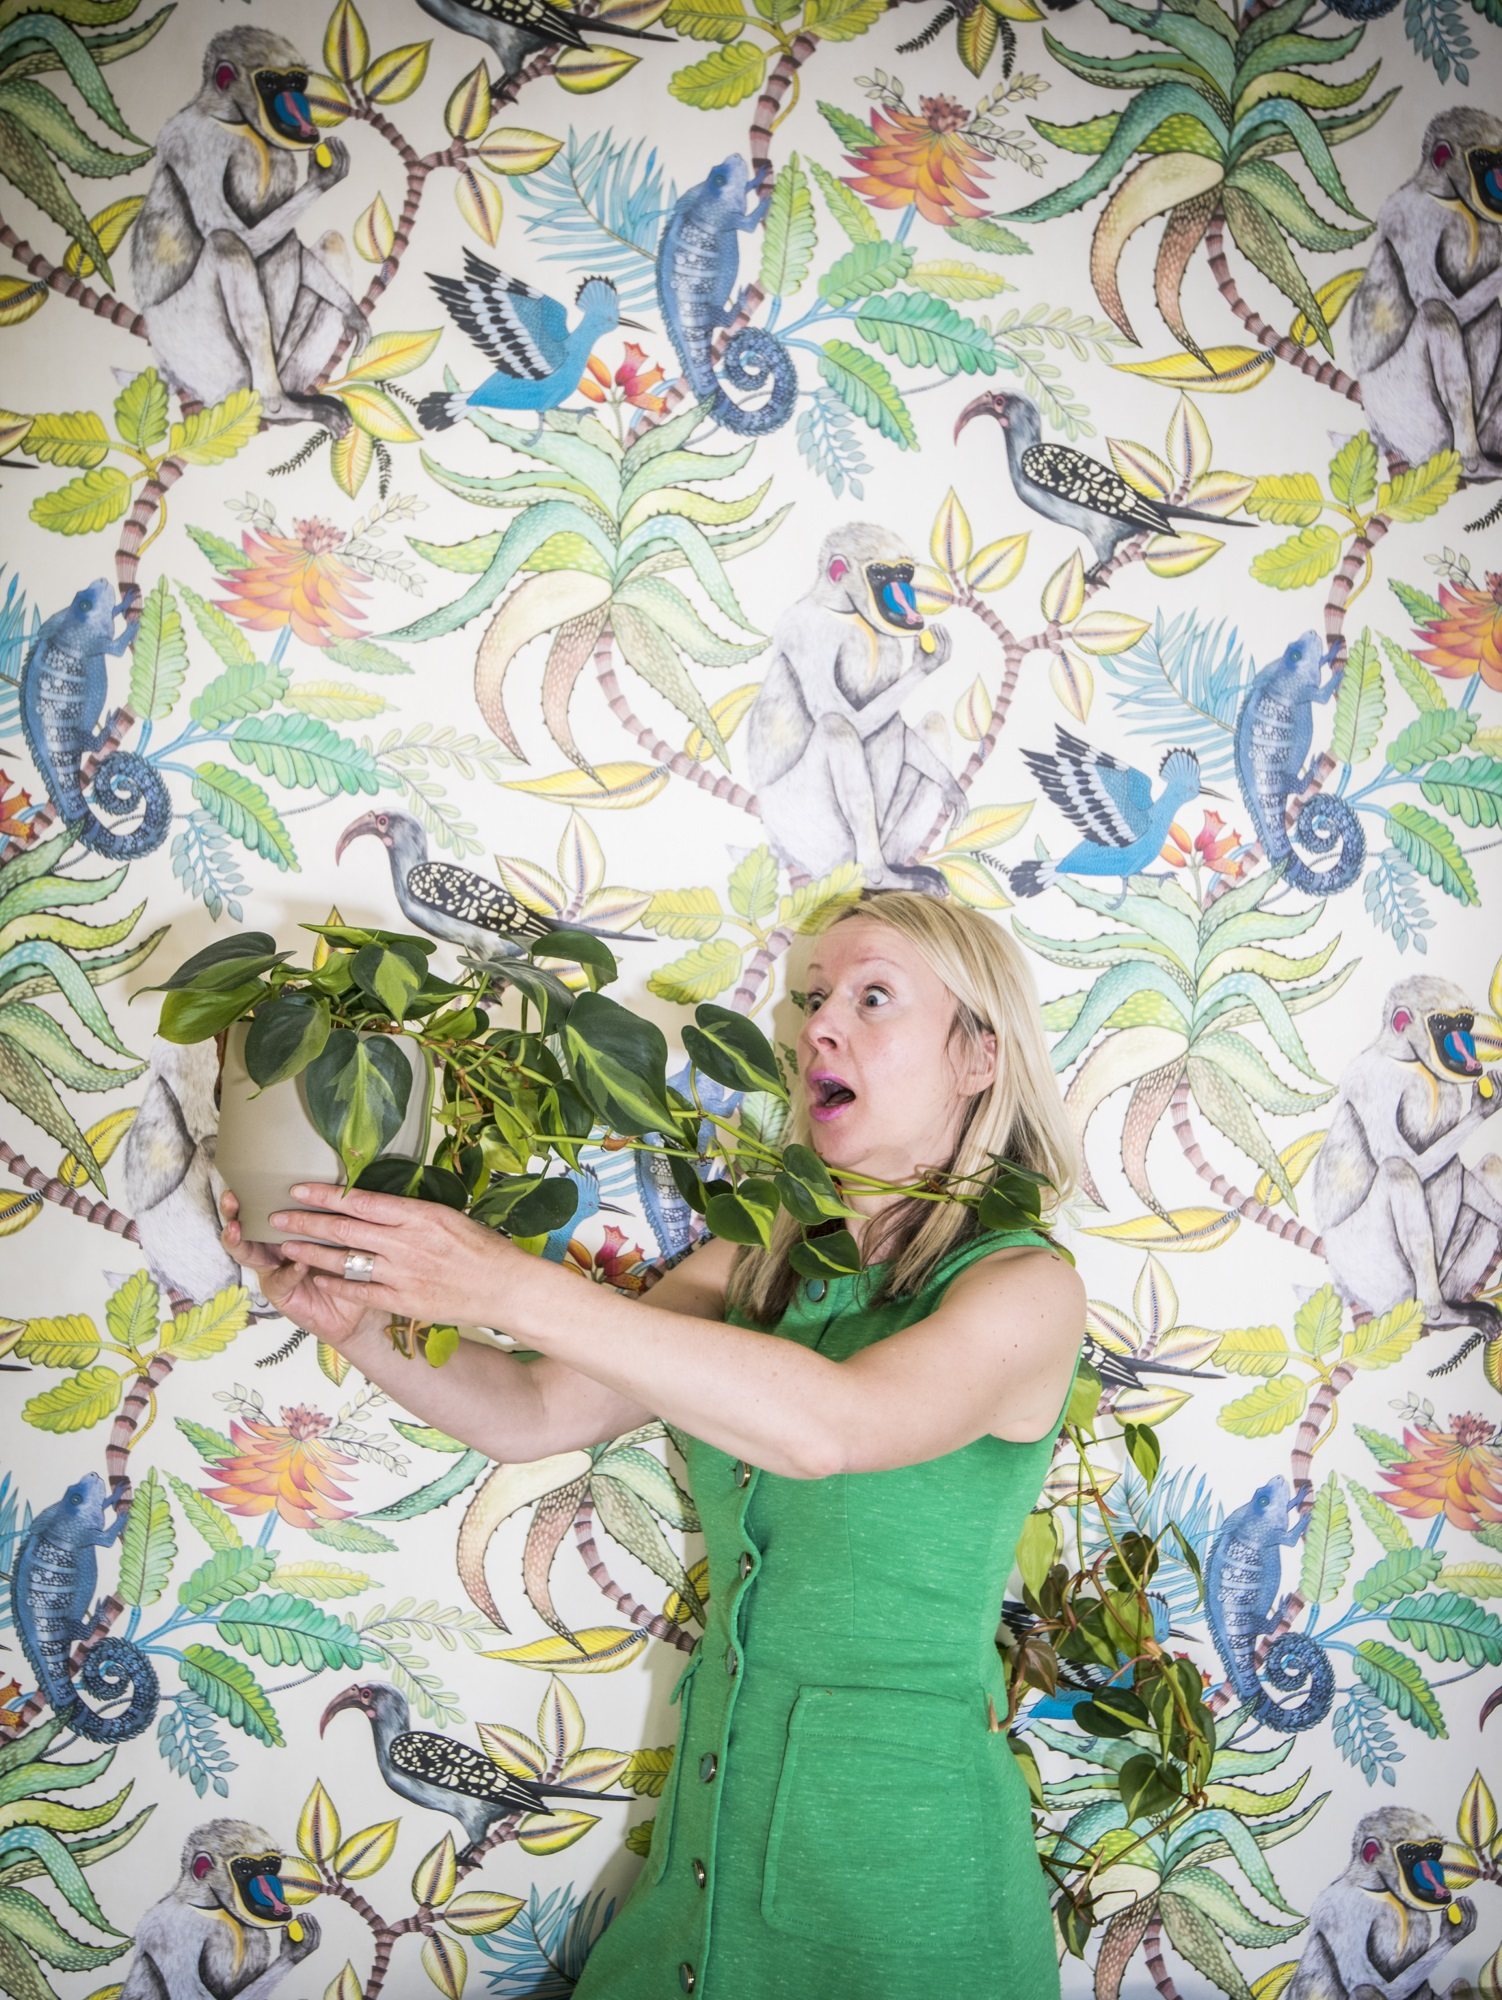 katya willems instagram expert and a plant.